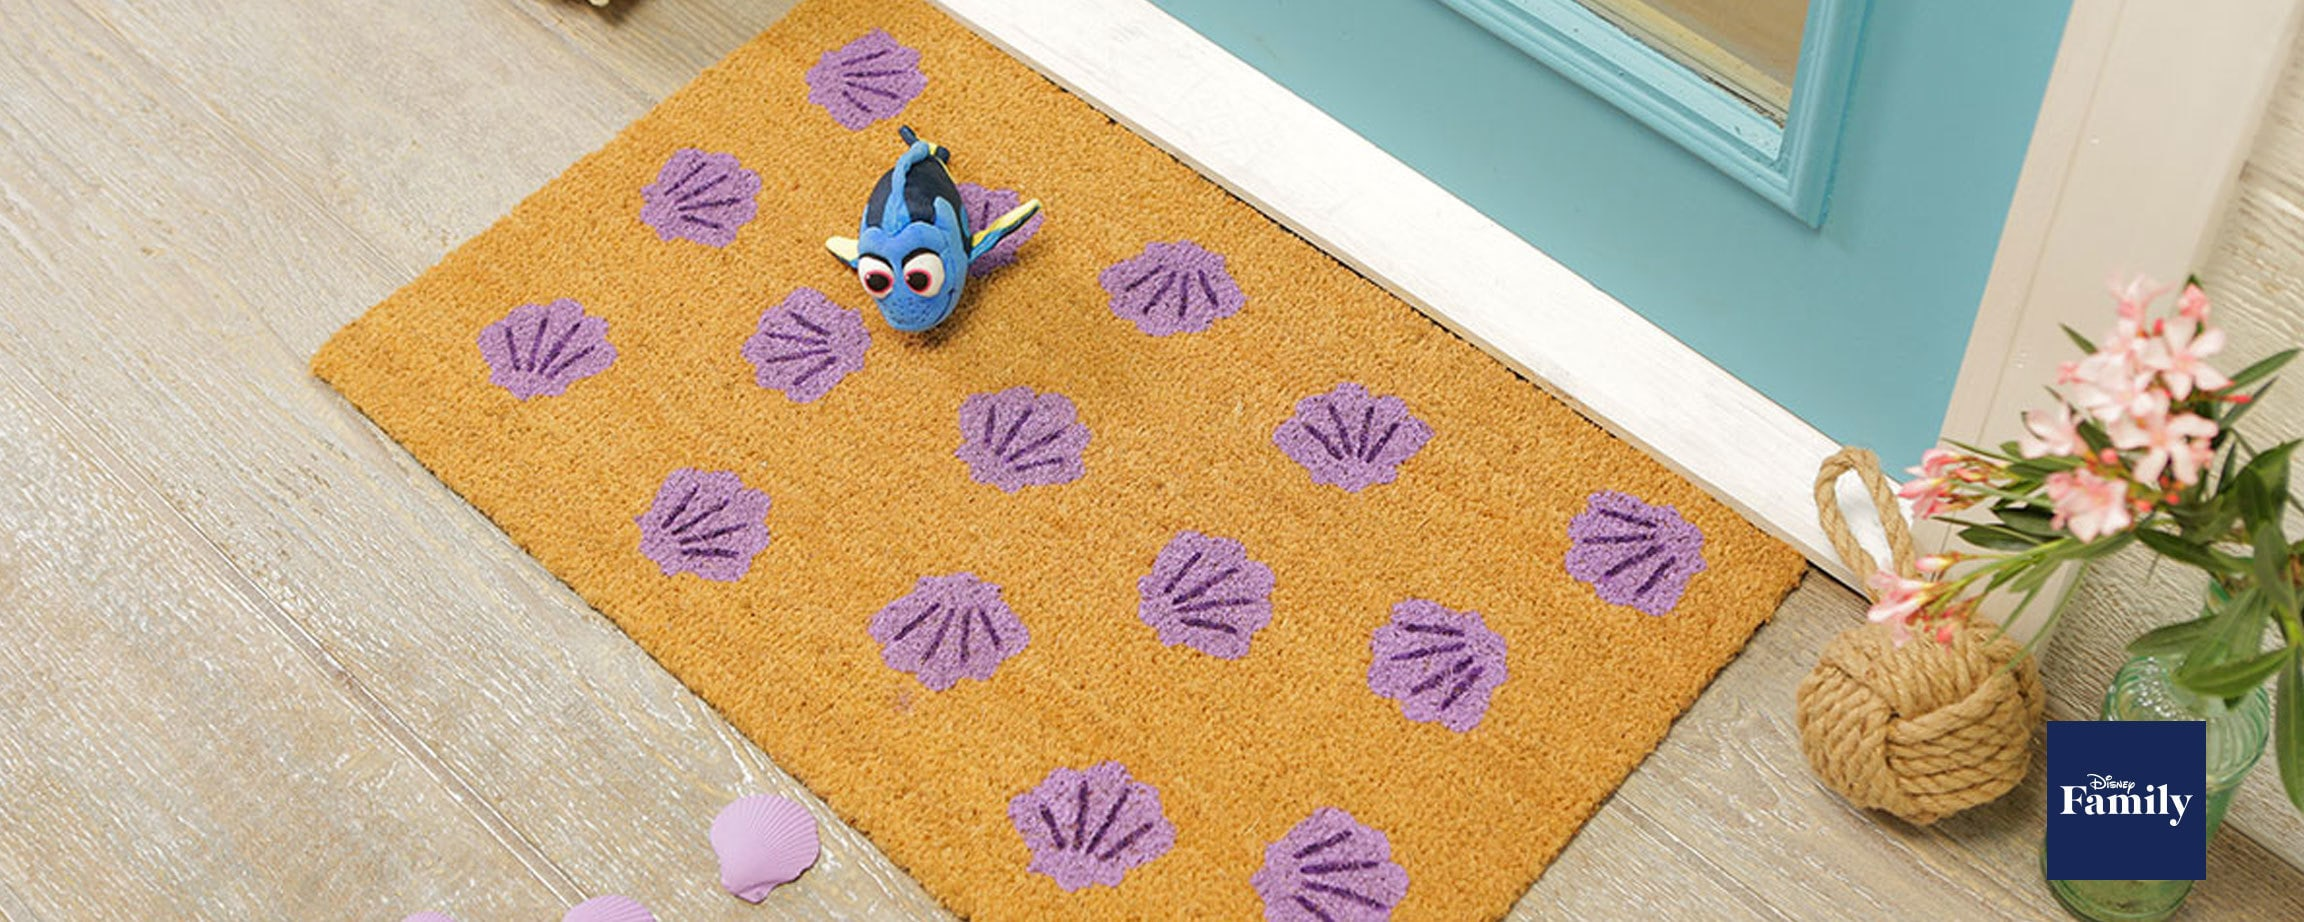 Pixar Finding Dory Welcome Mat